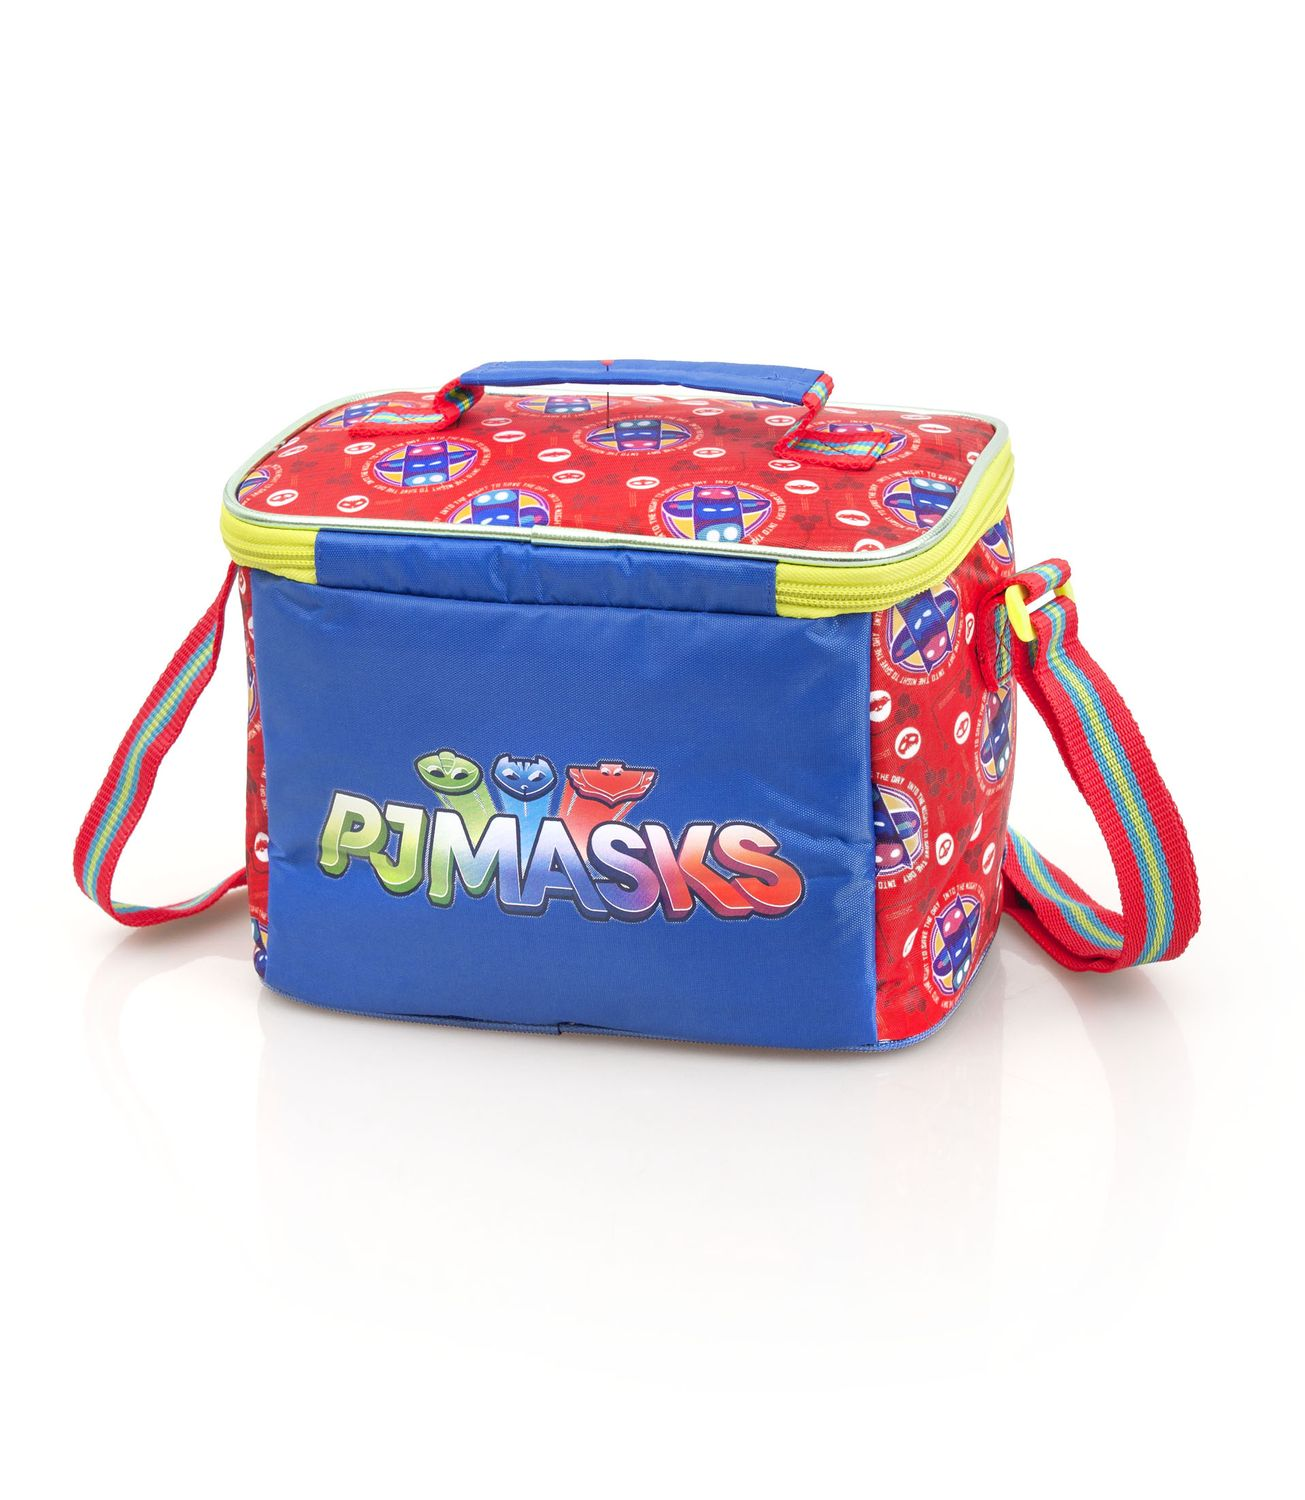 PJ MASKS Premium Cooler Lunch Bag ACTION – image 2